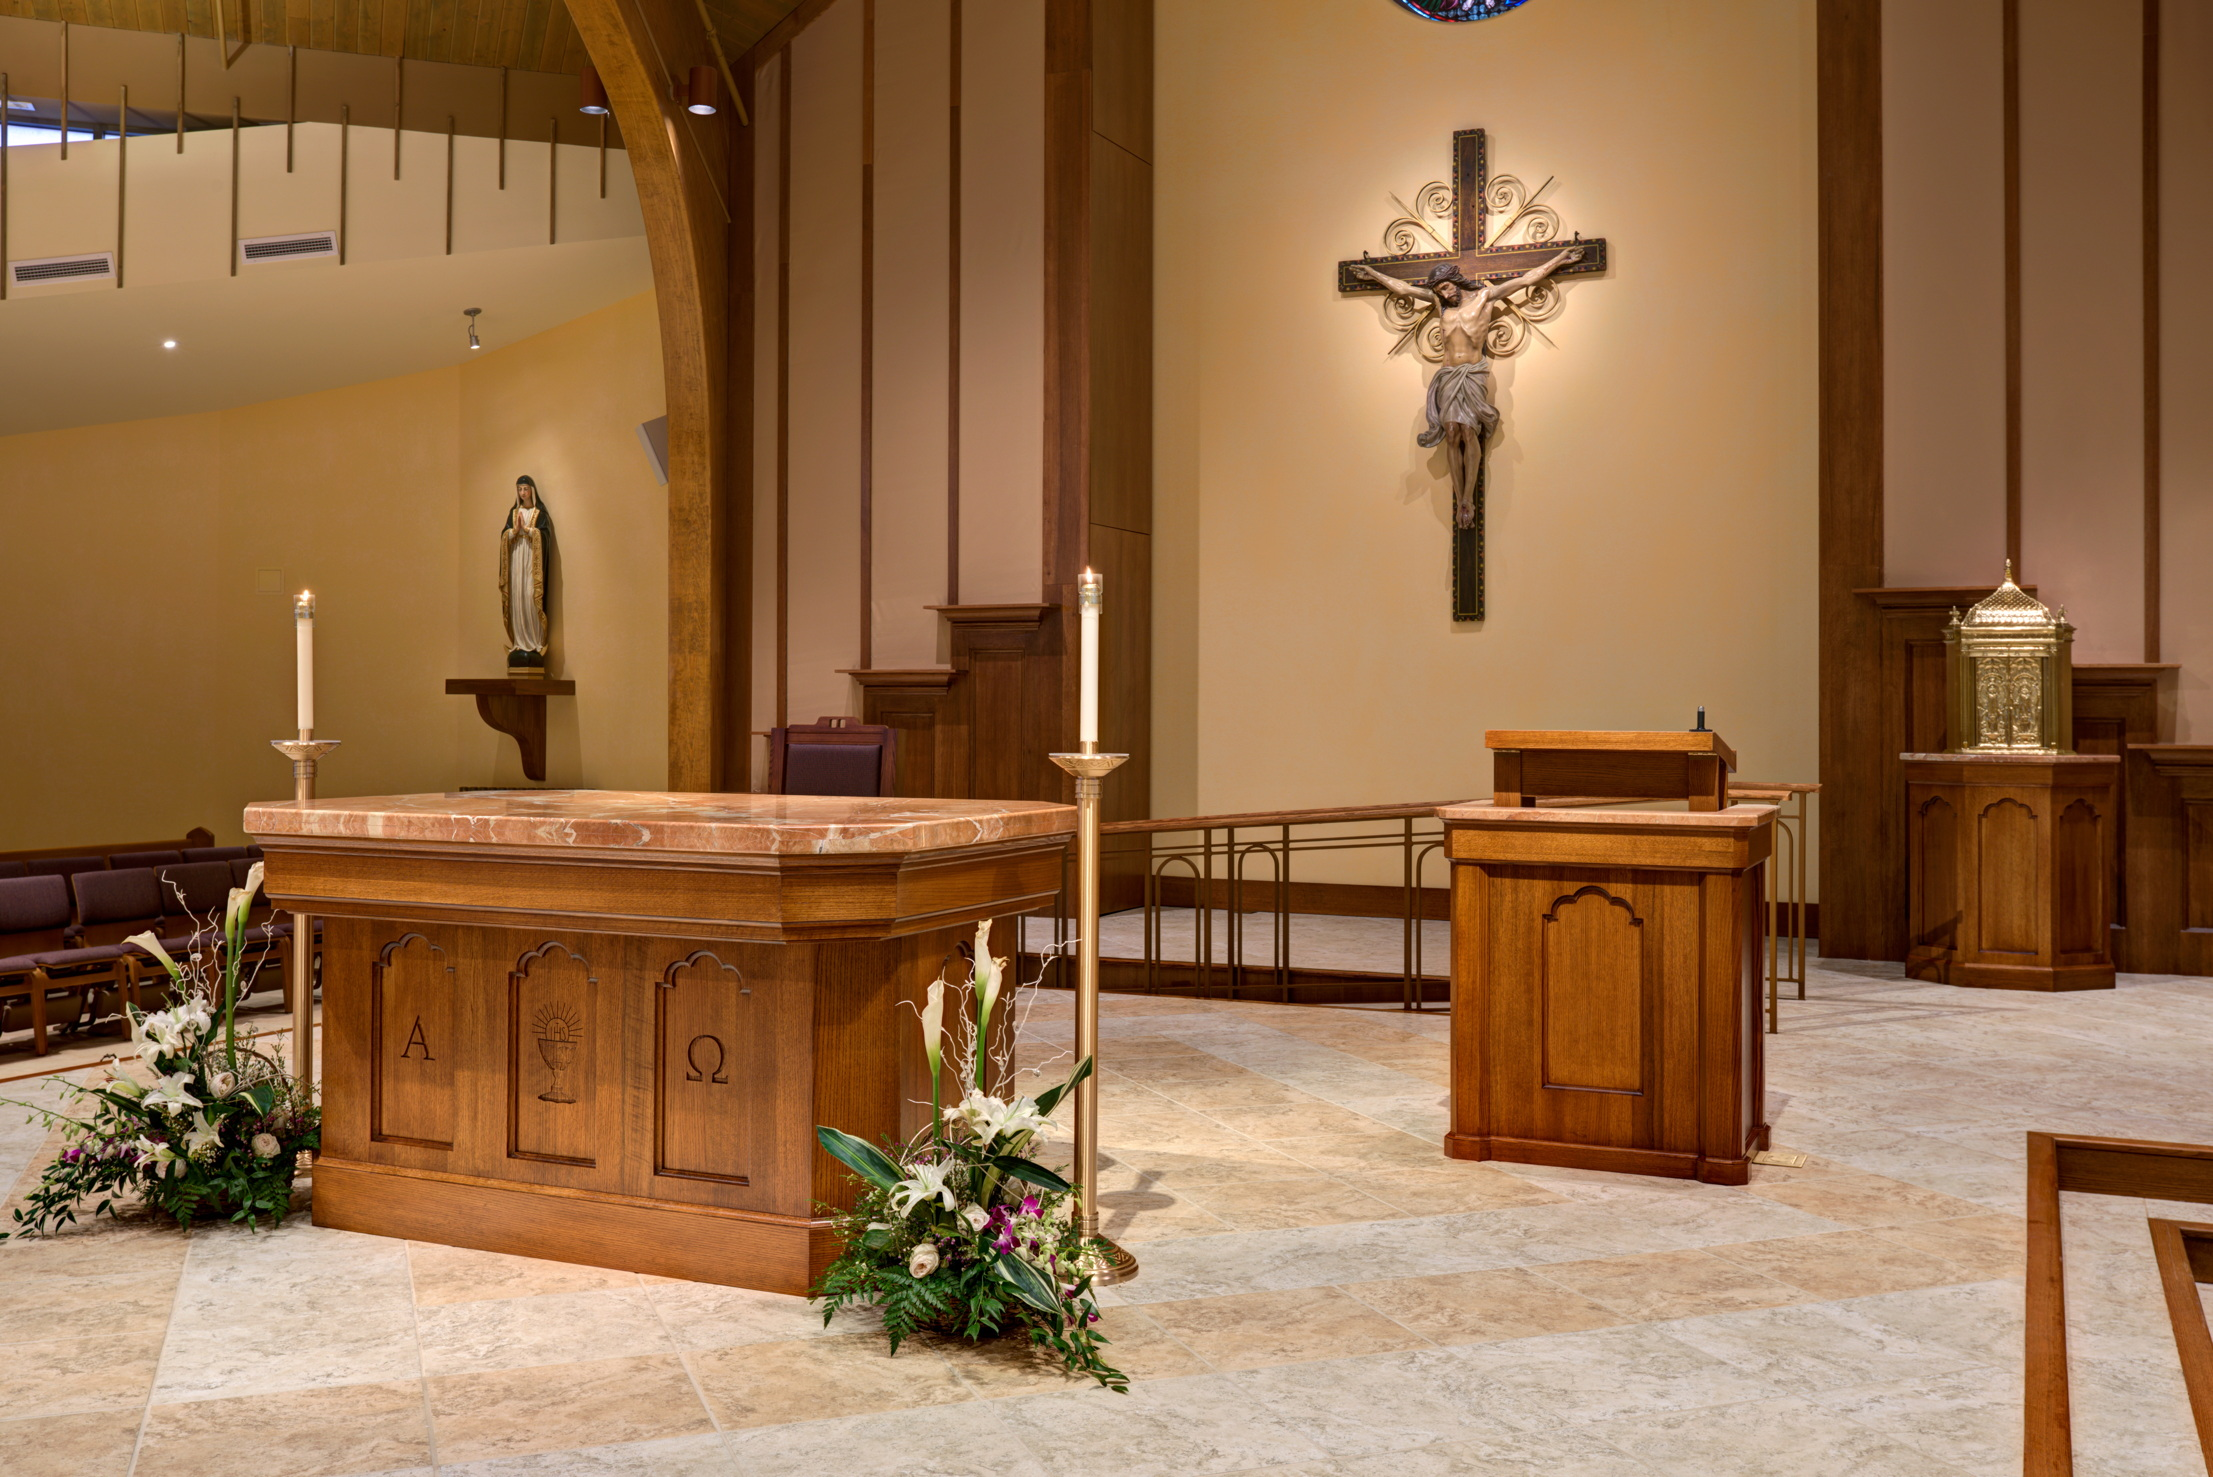 New altar table and height-adjustable ambo in the new worship space at St. Joseph Church by Foresight Architects